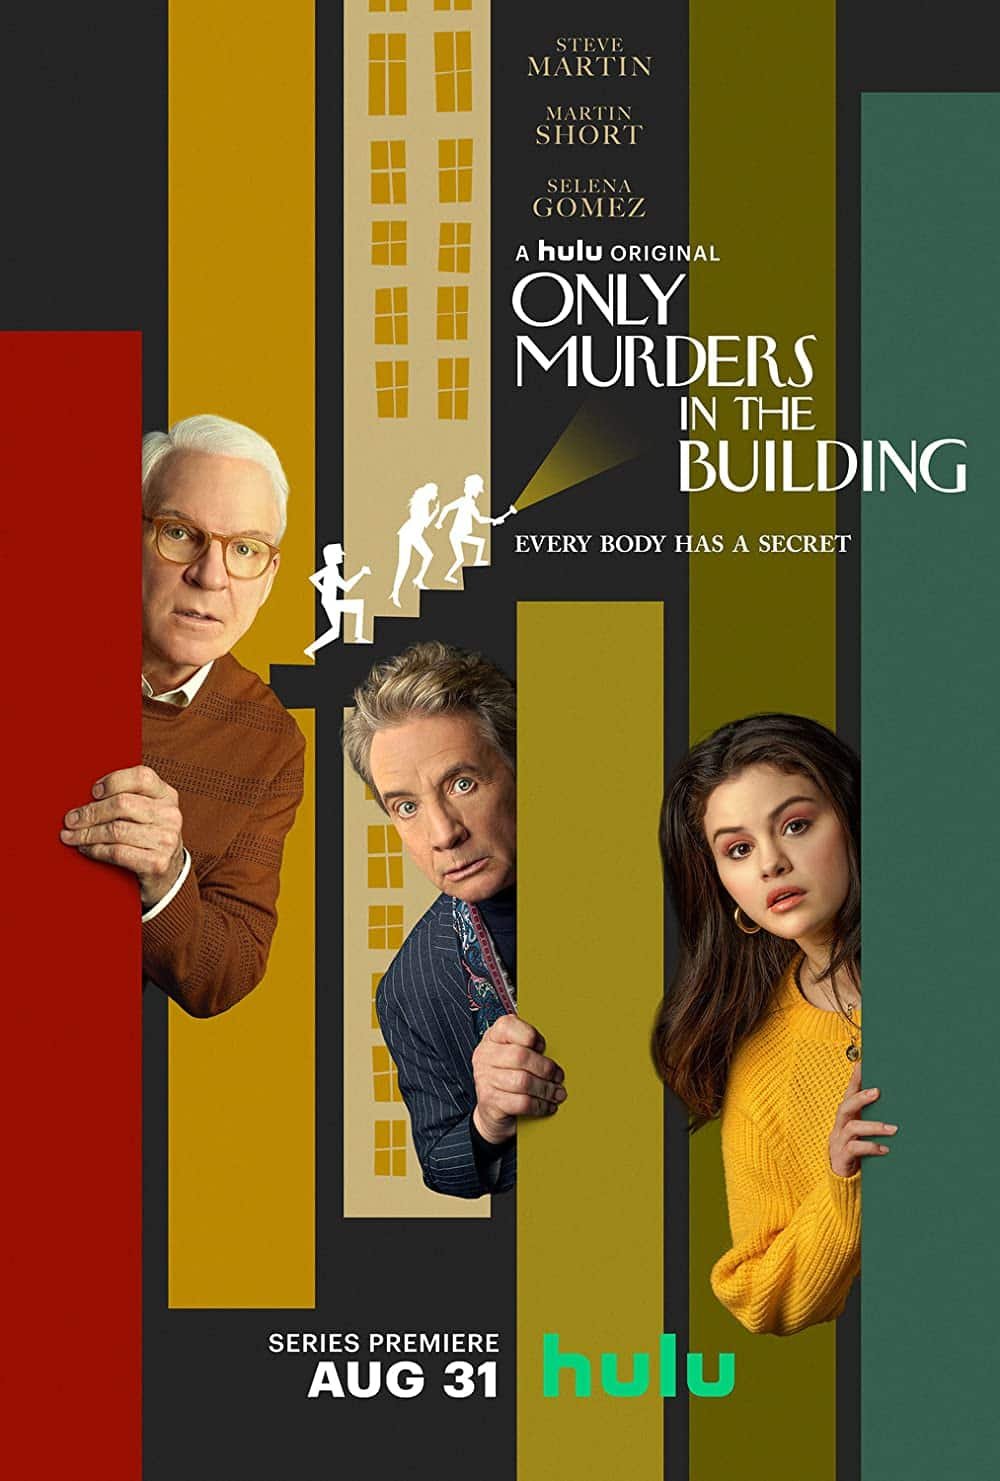 Only Murders in the Building Season 1 ซับไทย EP1-EP10 [จบ]